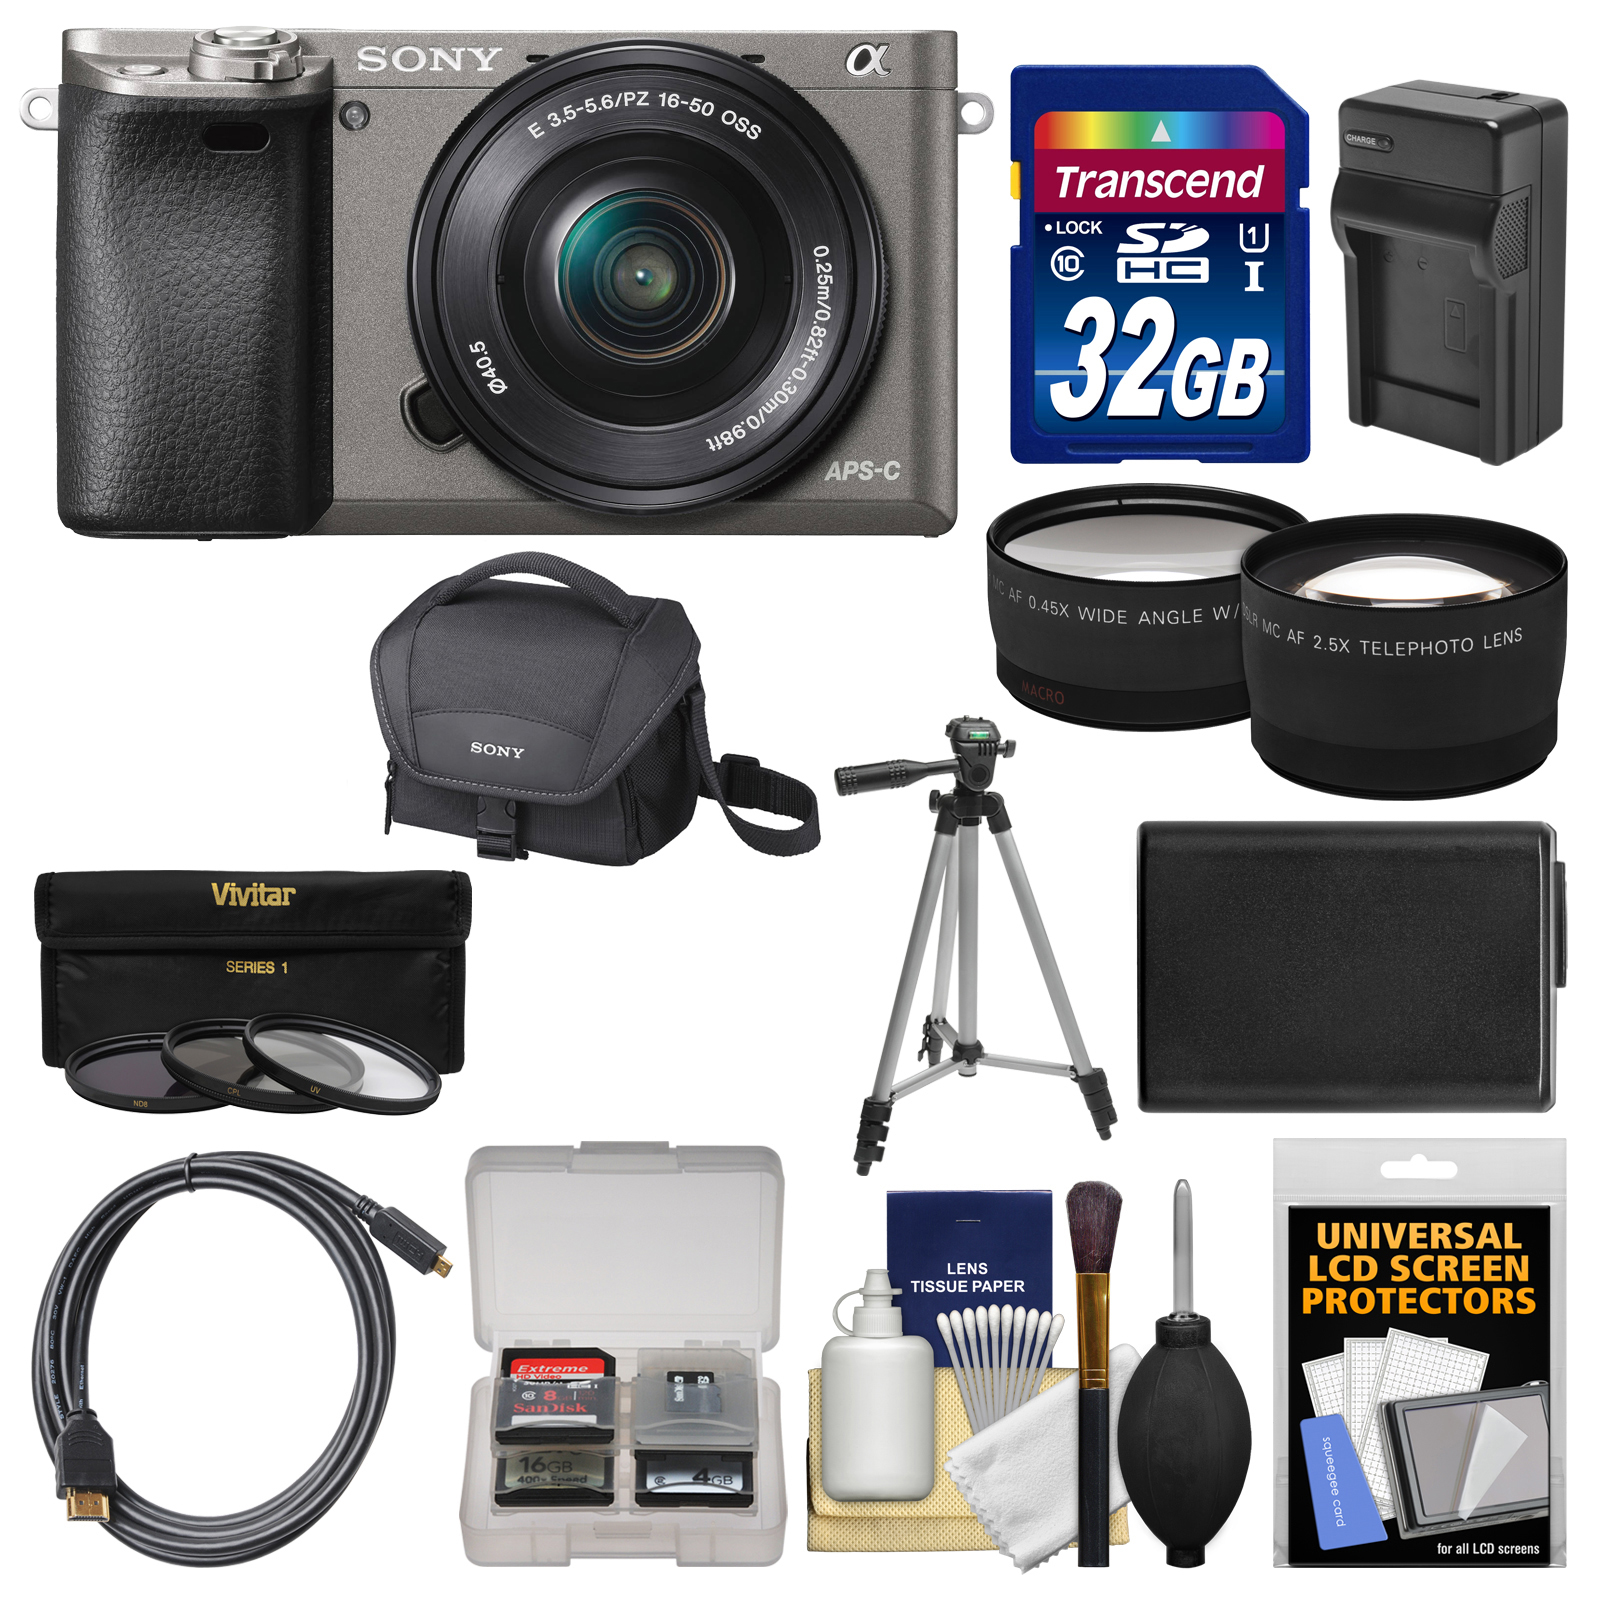 Sony Alpha A6000 Wi-Fi Digital Camera & 16-50mm Lens (Graphite) with 32GB Card + Case + Battery/Charger + Tripod + Tele/Wide Lens Kit